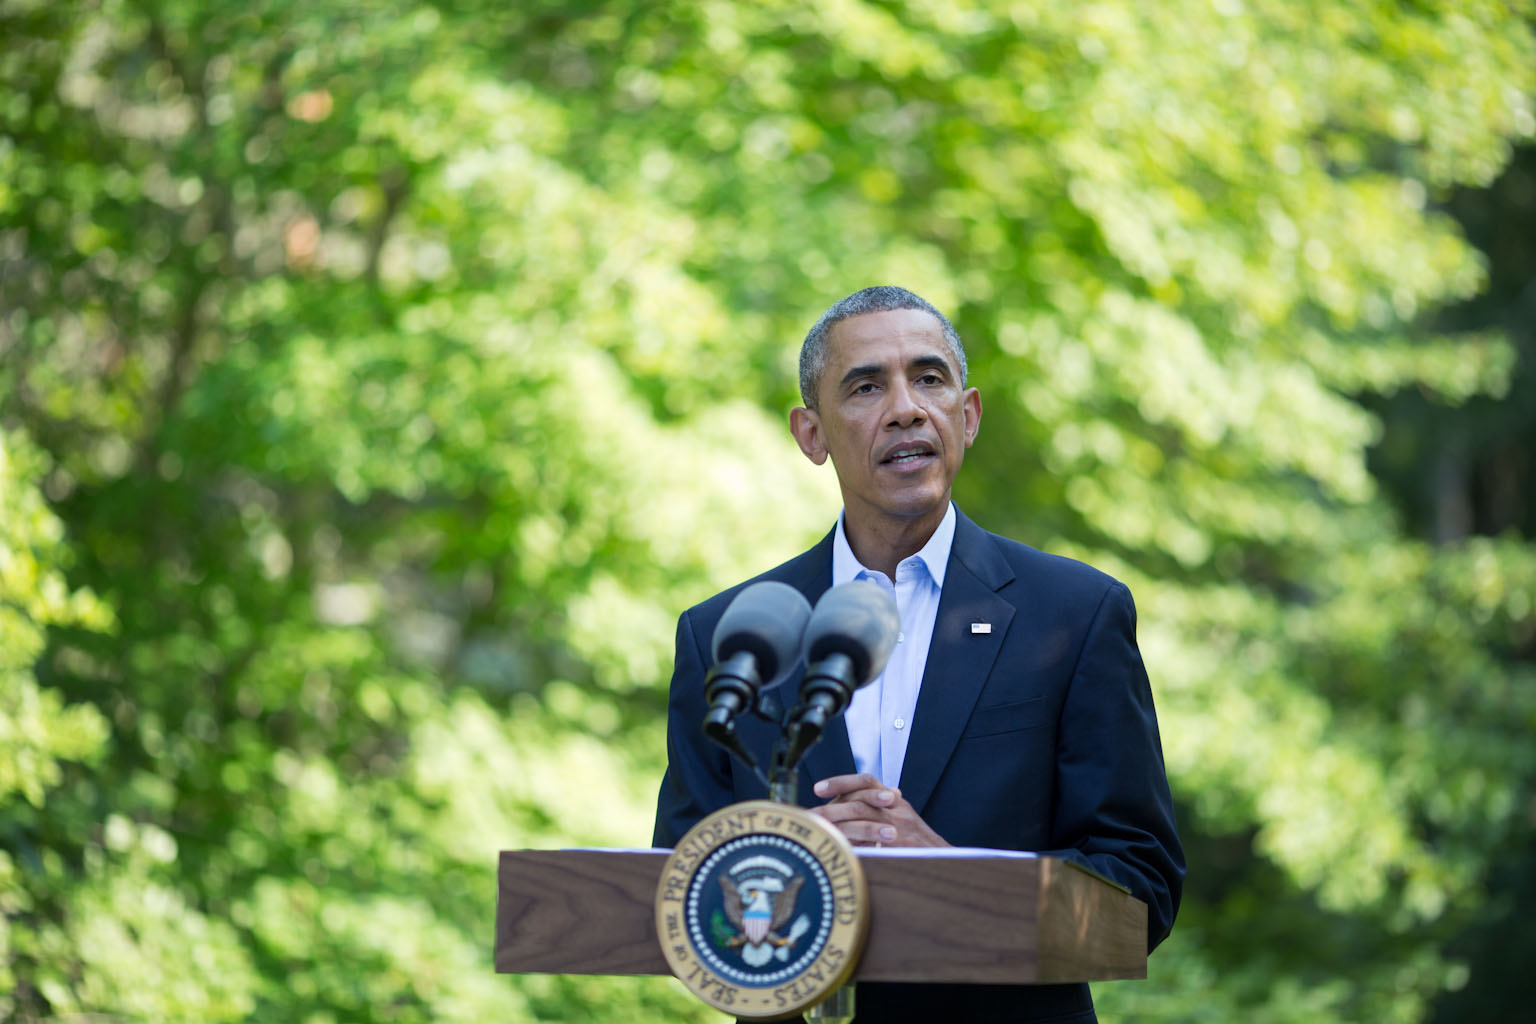 President Barack Obama makes a statement on the situation in Iraq from Chilmark, Mass., August 11, 2014.